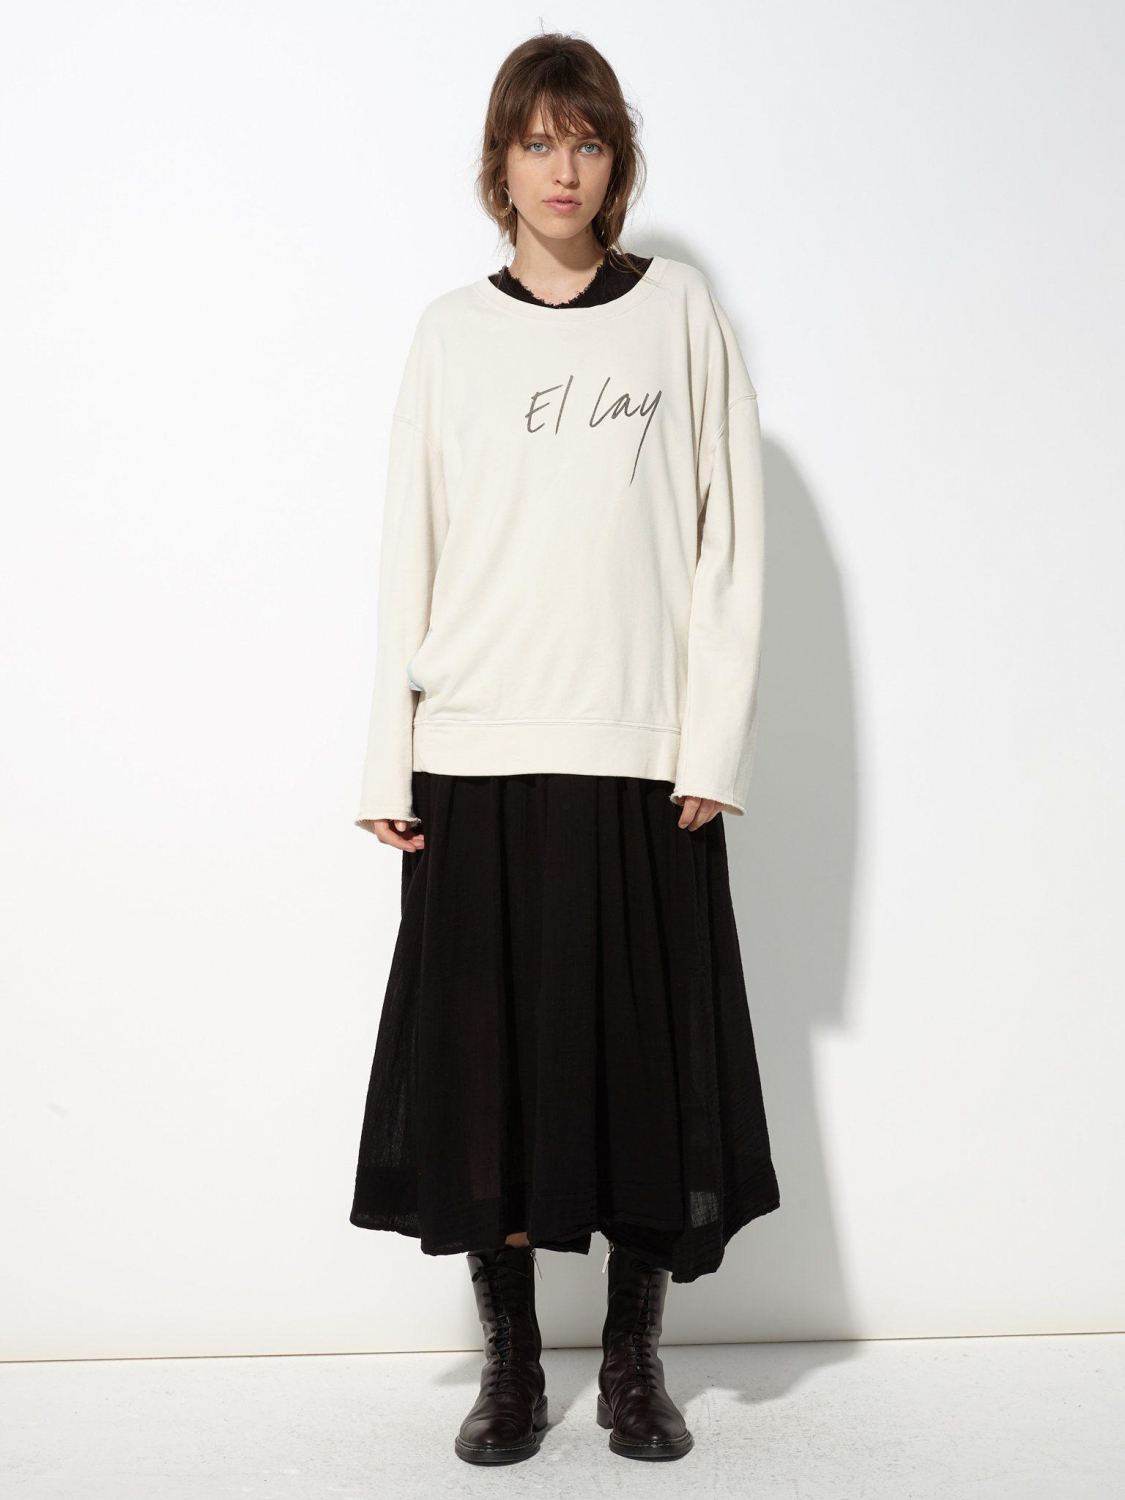 Raquel Allegra Pré-Collection Roomy Sweatshirt French Terry - Dirty White